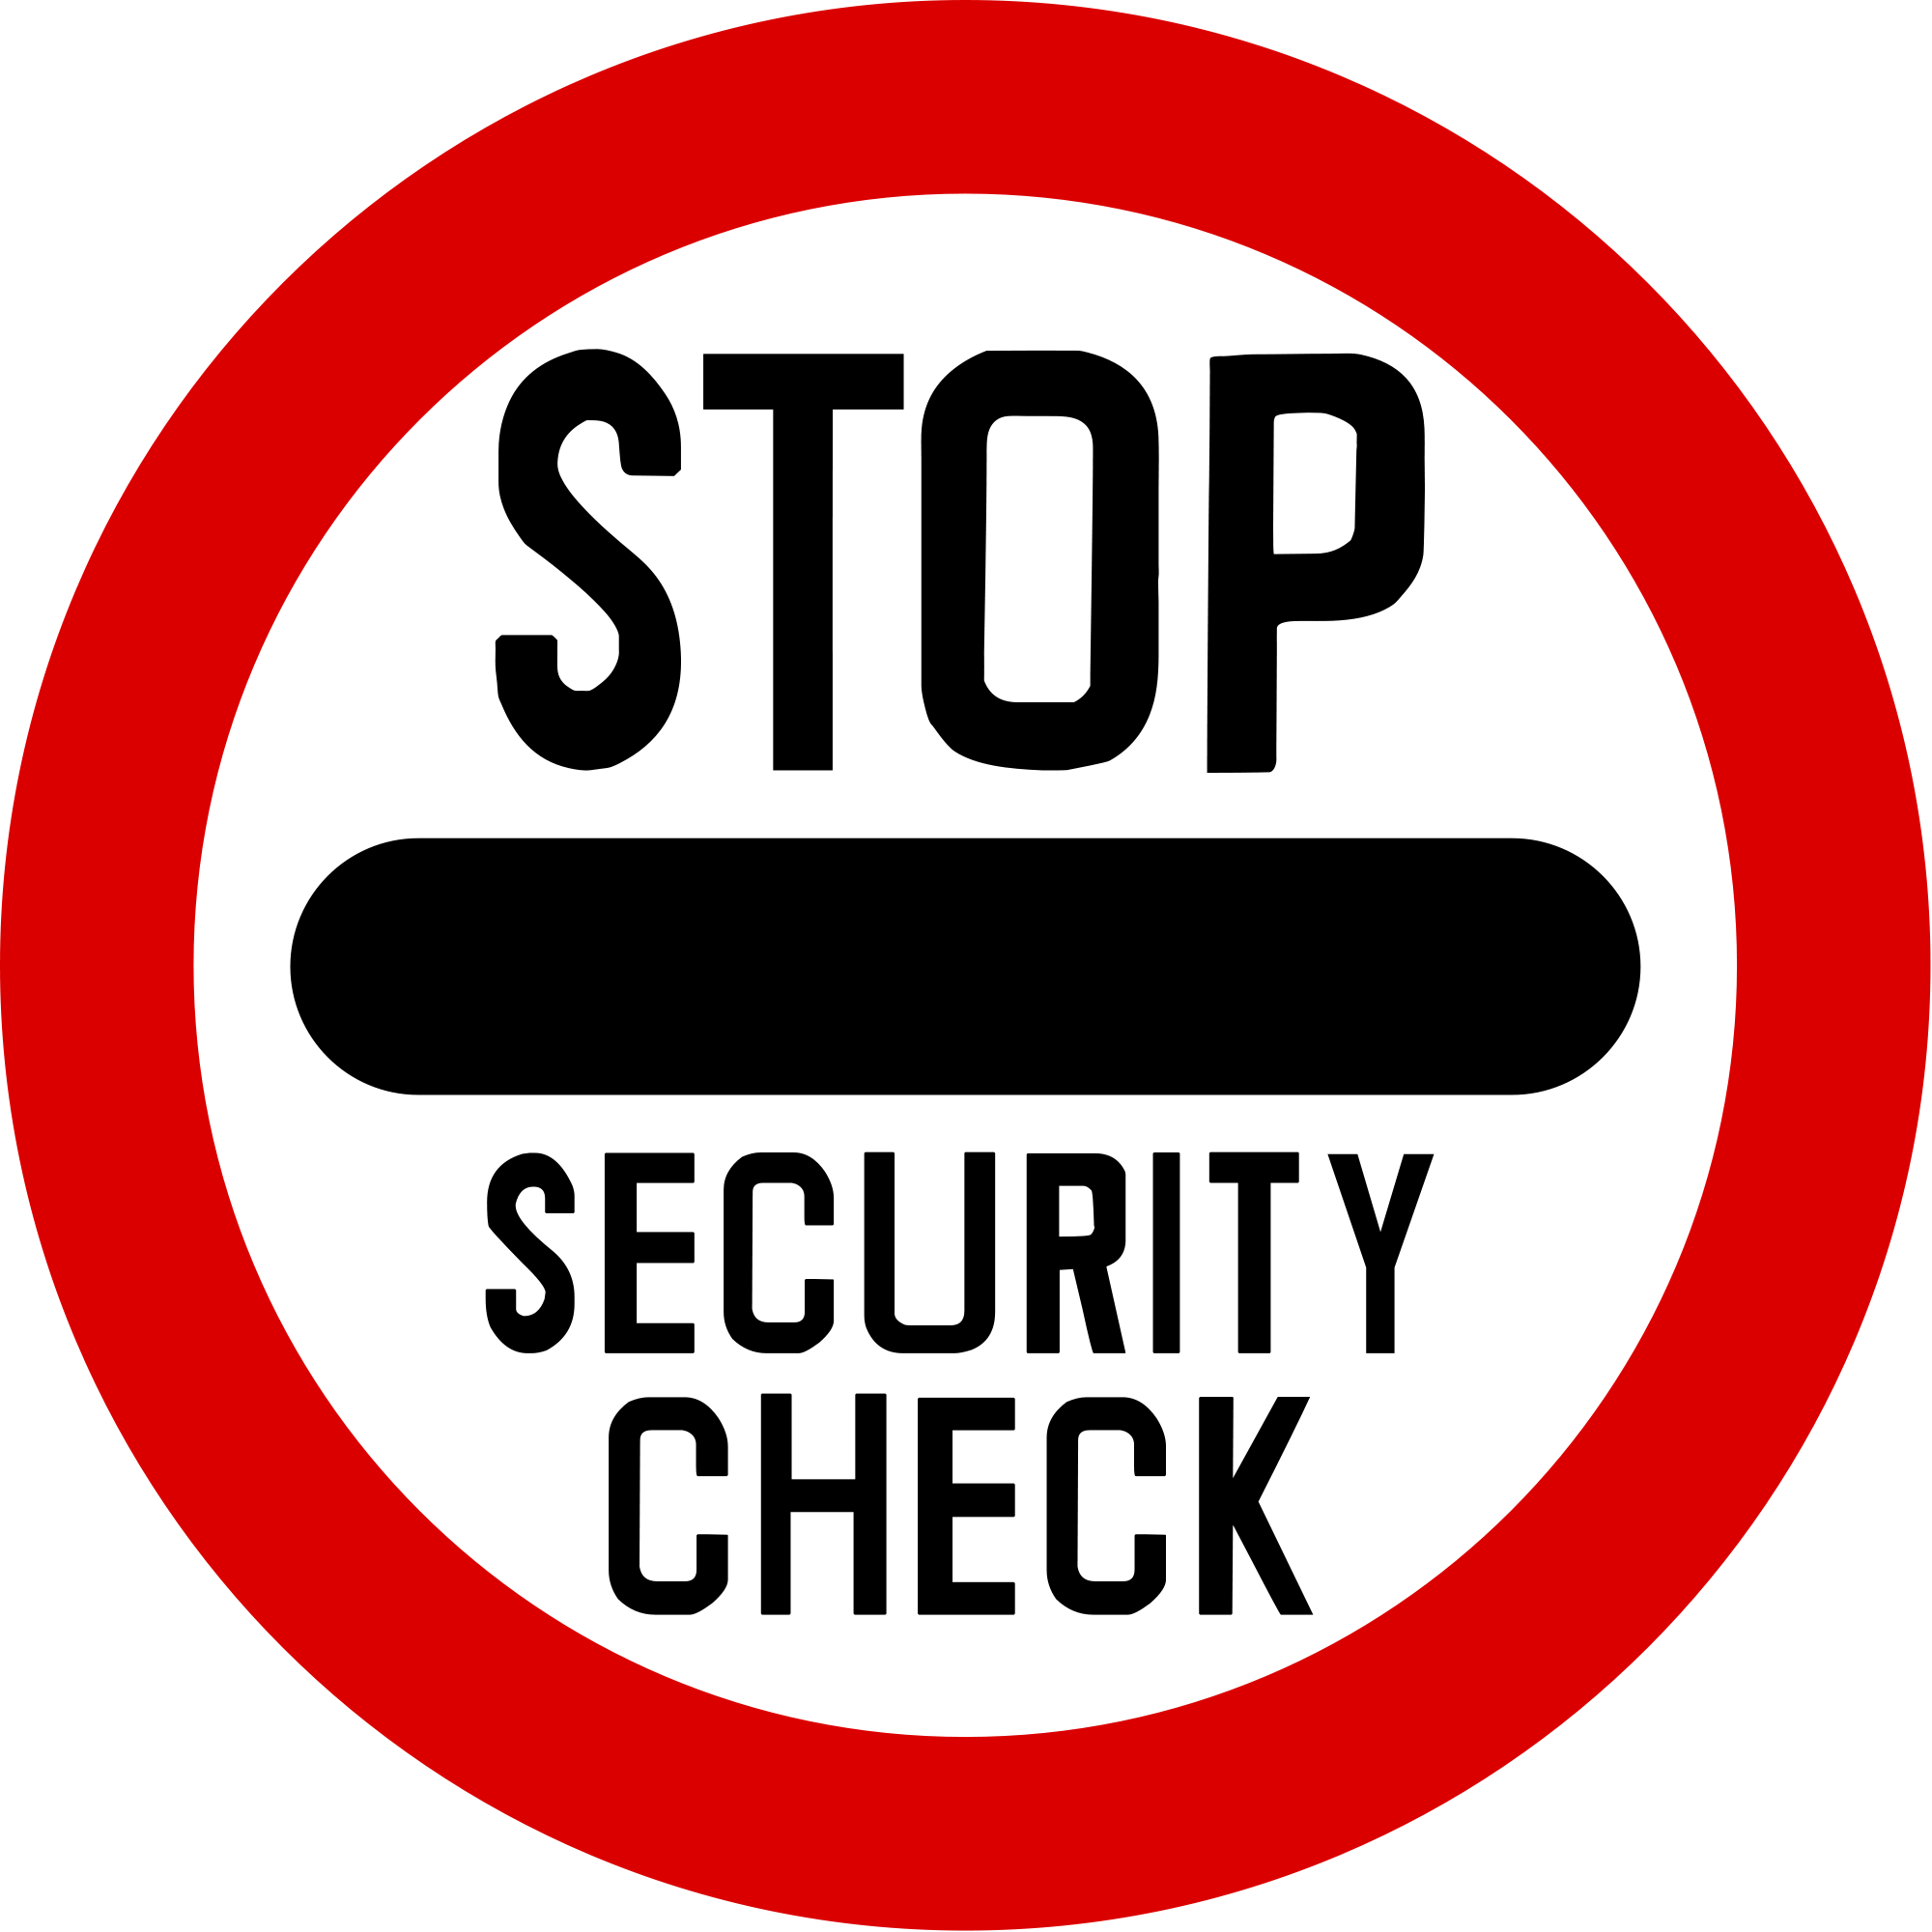 Stop Security Check